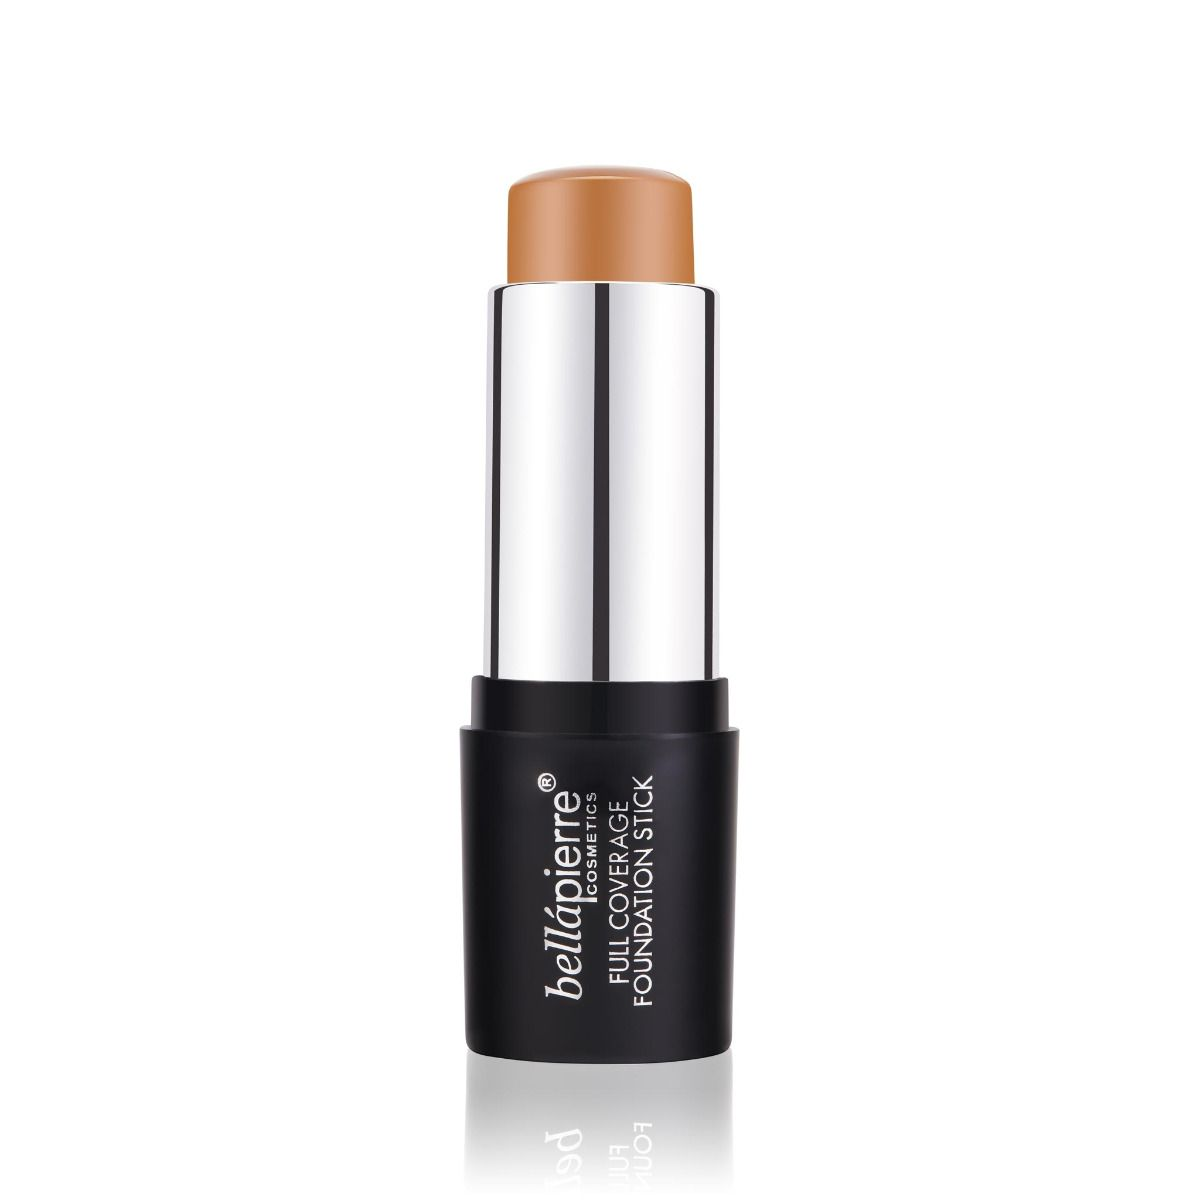 Full Coverage Foundation Stick - Deep - Bellapierrechile